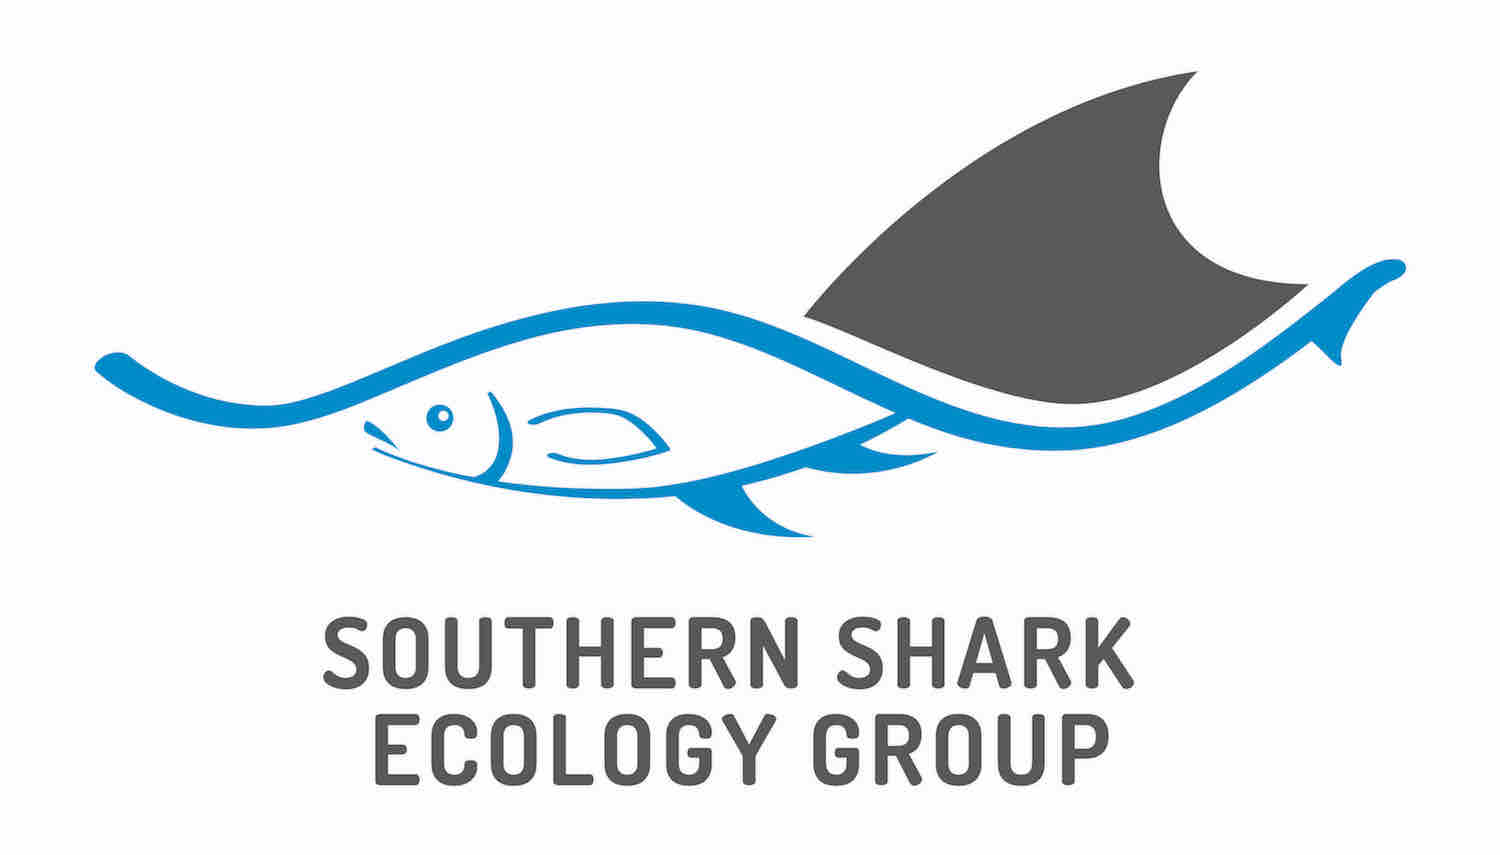 Copy of The Southern Shark Ecology Group